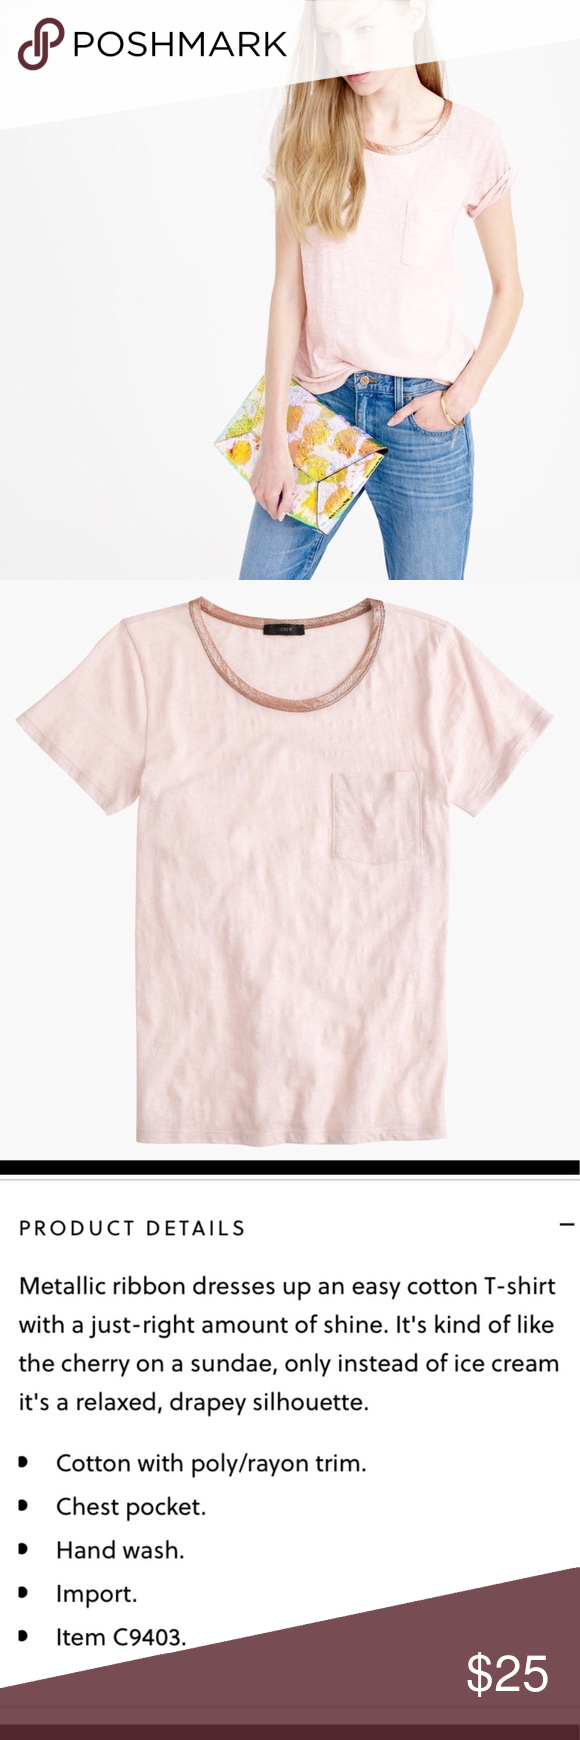 J Crew Pocket TShirt With Metallic Trim  Flaws Metallic And